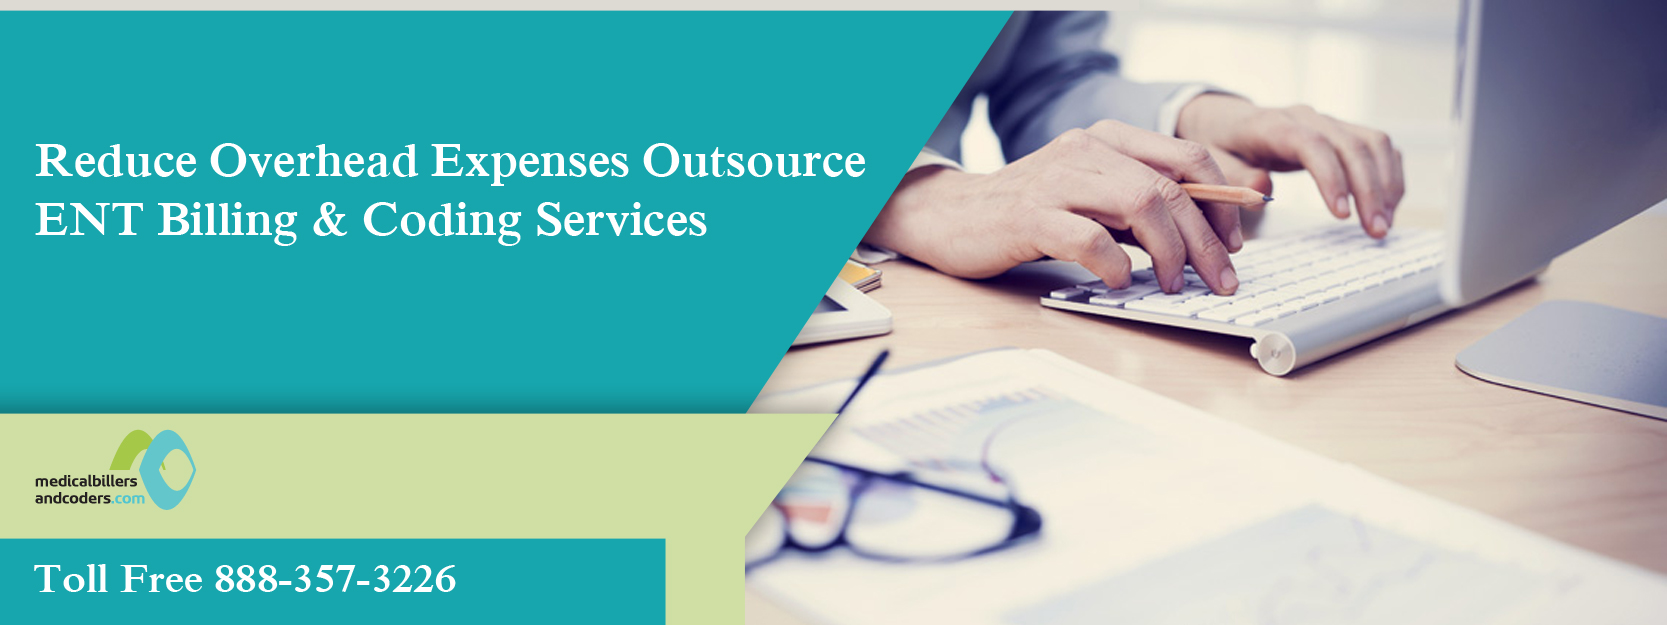 reduce-overhead-expenses-outsource-ent-billing-and-Coding-Services